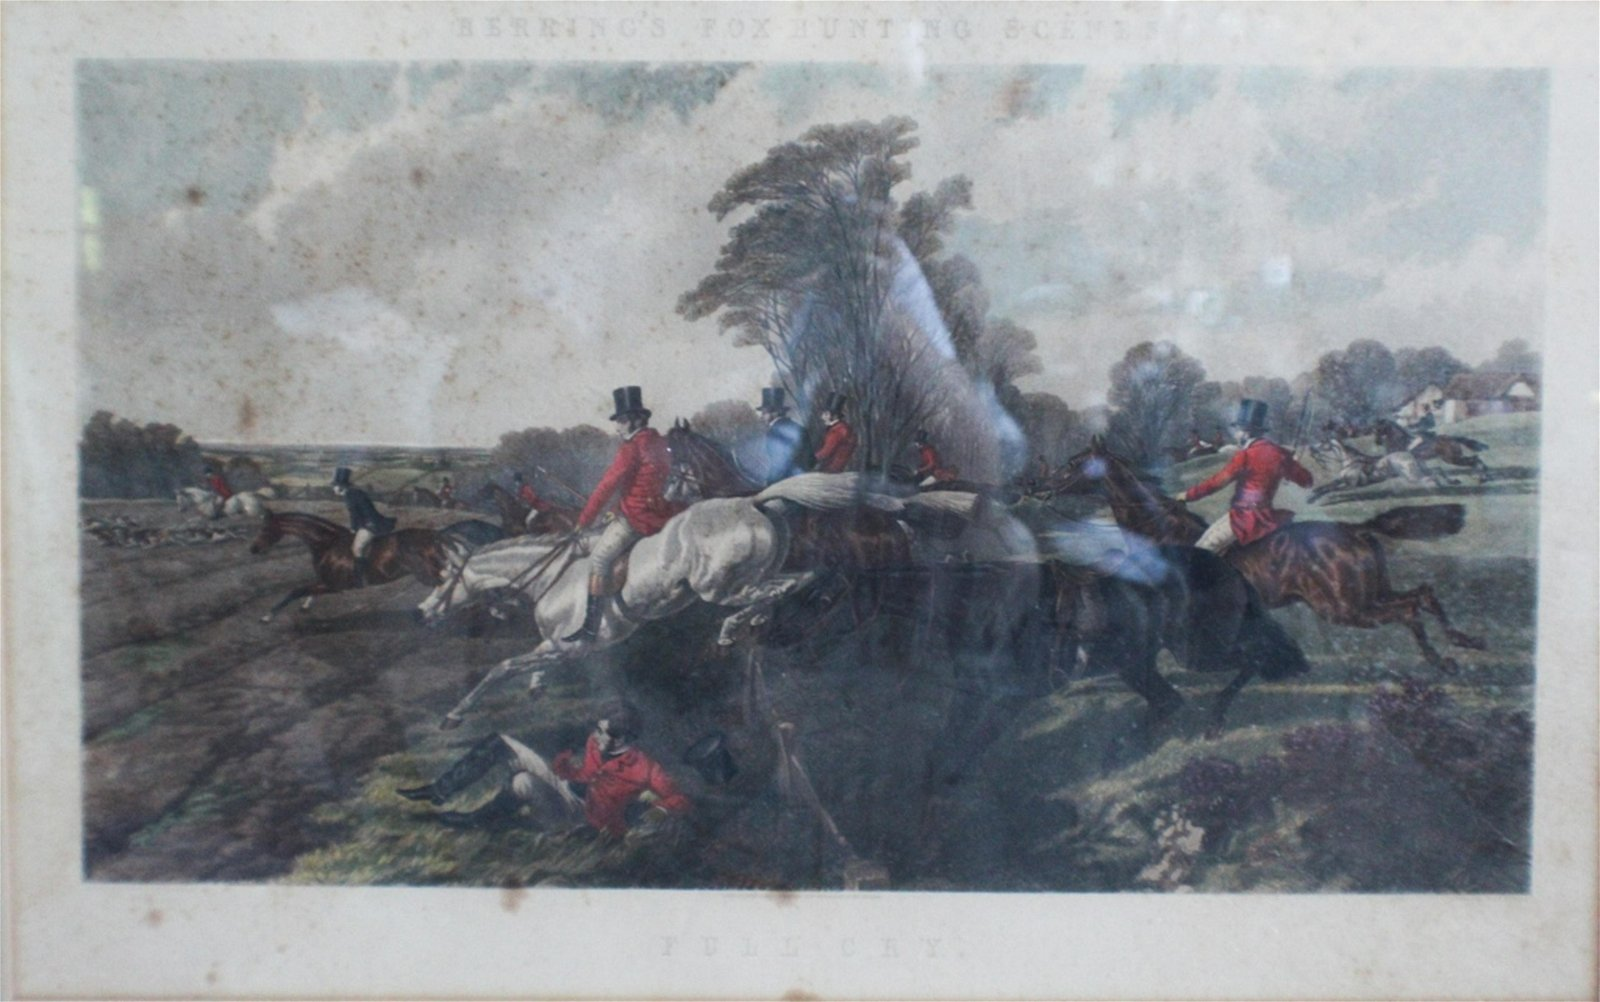 English Sporting Hand Colored Engraving by Harris